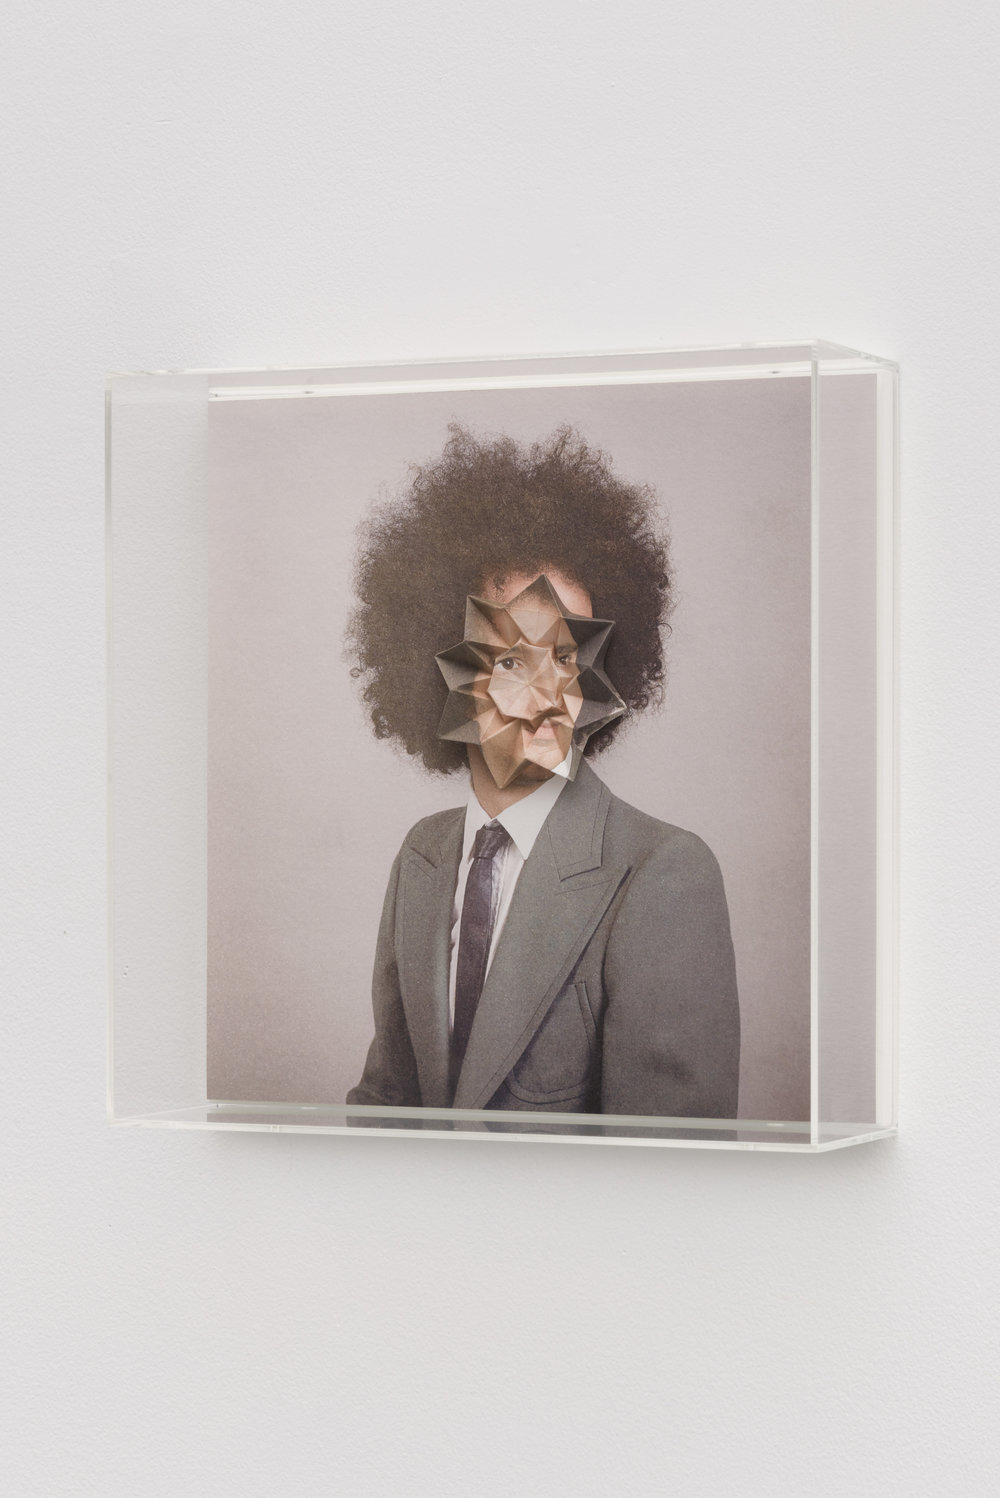 Alma Haser,  Patient No. 24 HD (Sietse) , 2016  Digital pigment print with folded digital pigment print sculpture, plexiglass box, 30 x 30 x 10 cm (approx. 12 x 12 x 4 in), edition of 5   Inquire